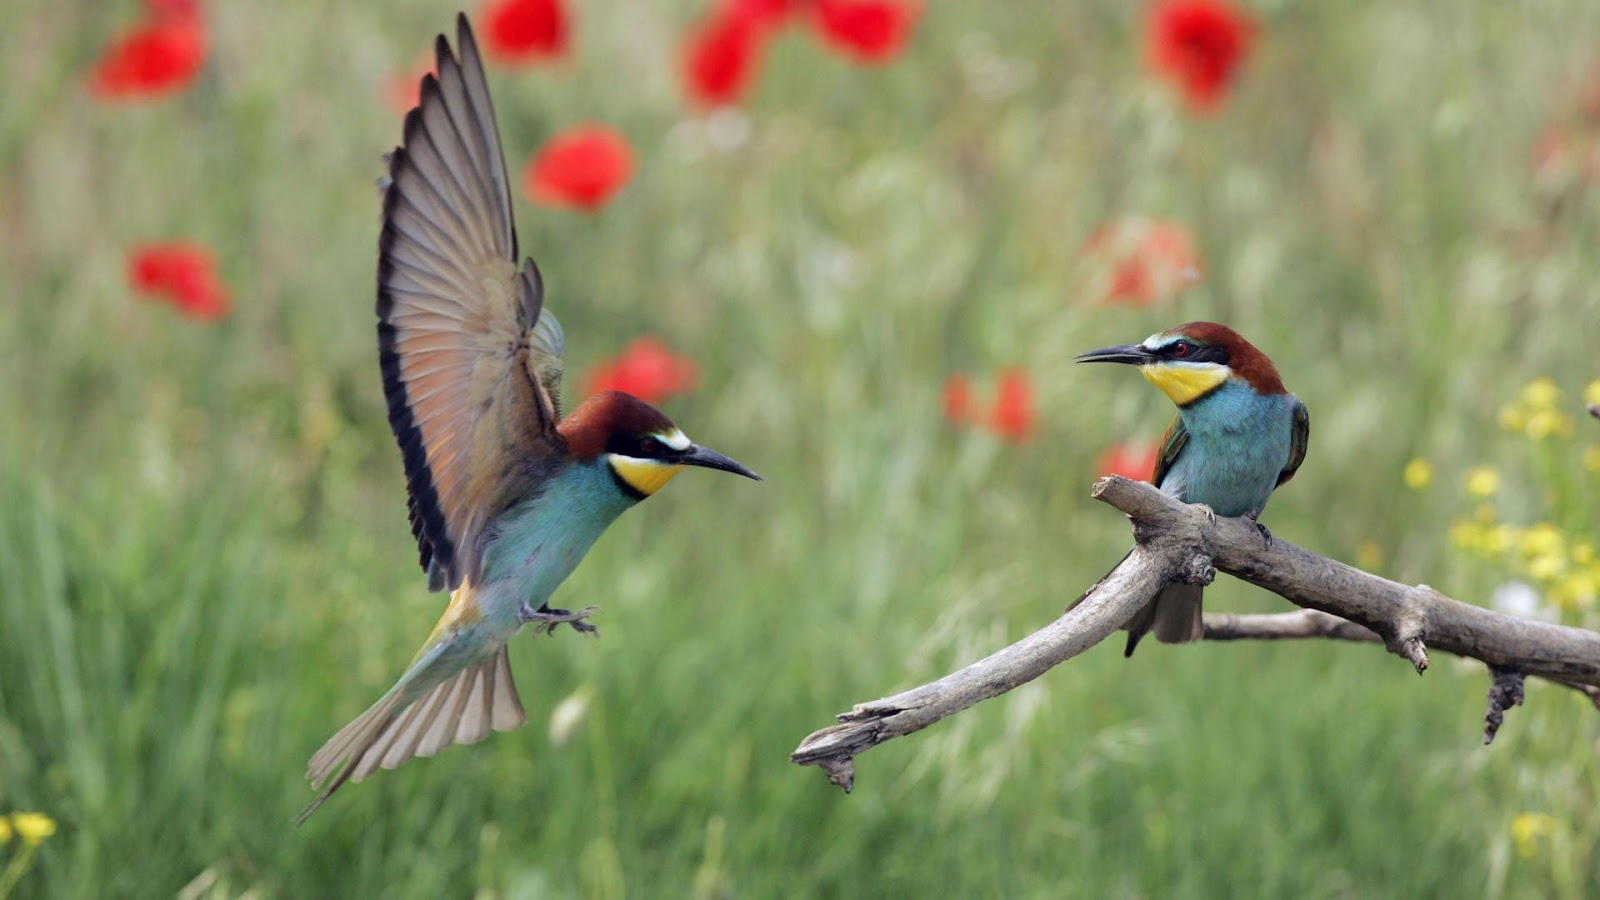 Cute Lovable Couple Wallpapers Cute Birds Hd Wallpapers Mass Wallpapers